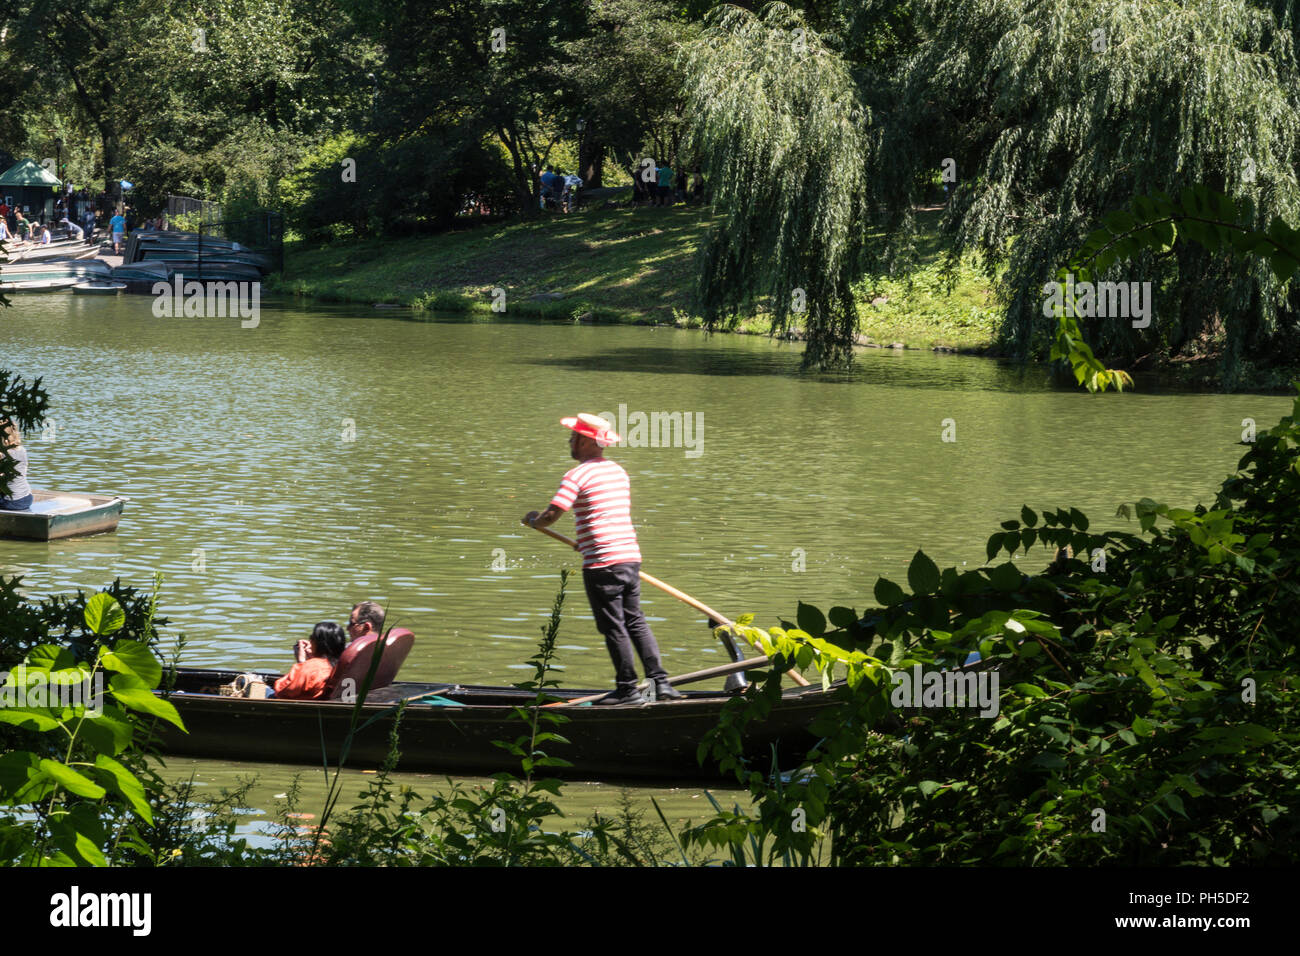 Visitors enjoy boating on the Lake in Central Park, NYC, USA - Stock Image